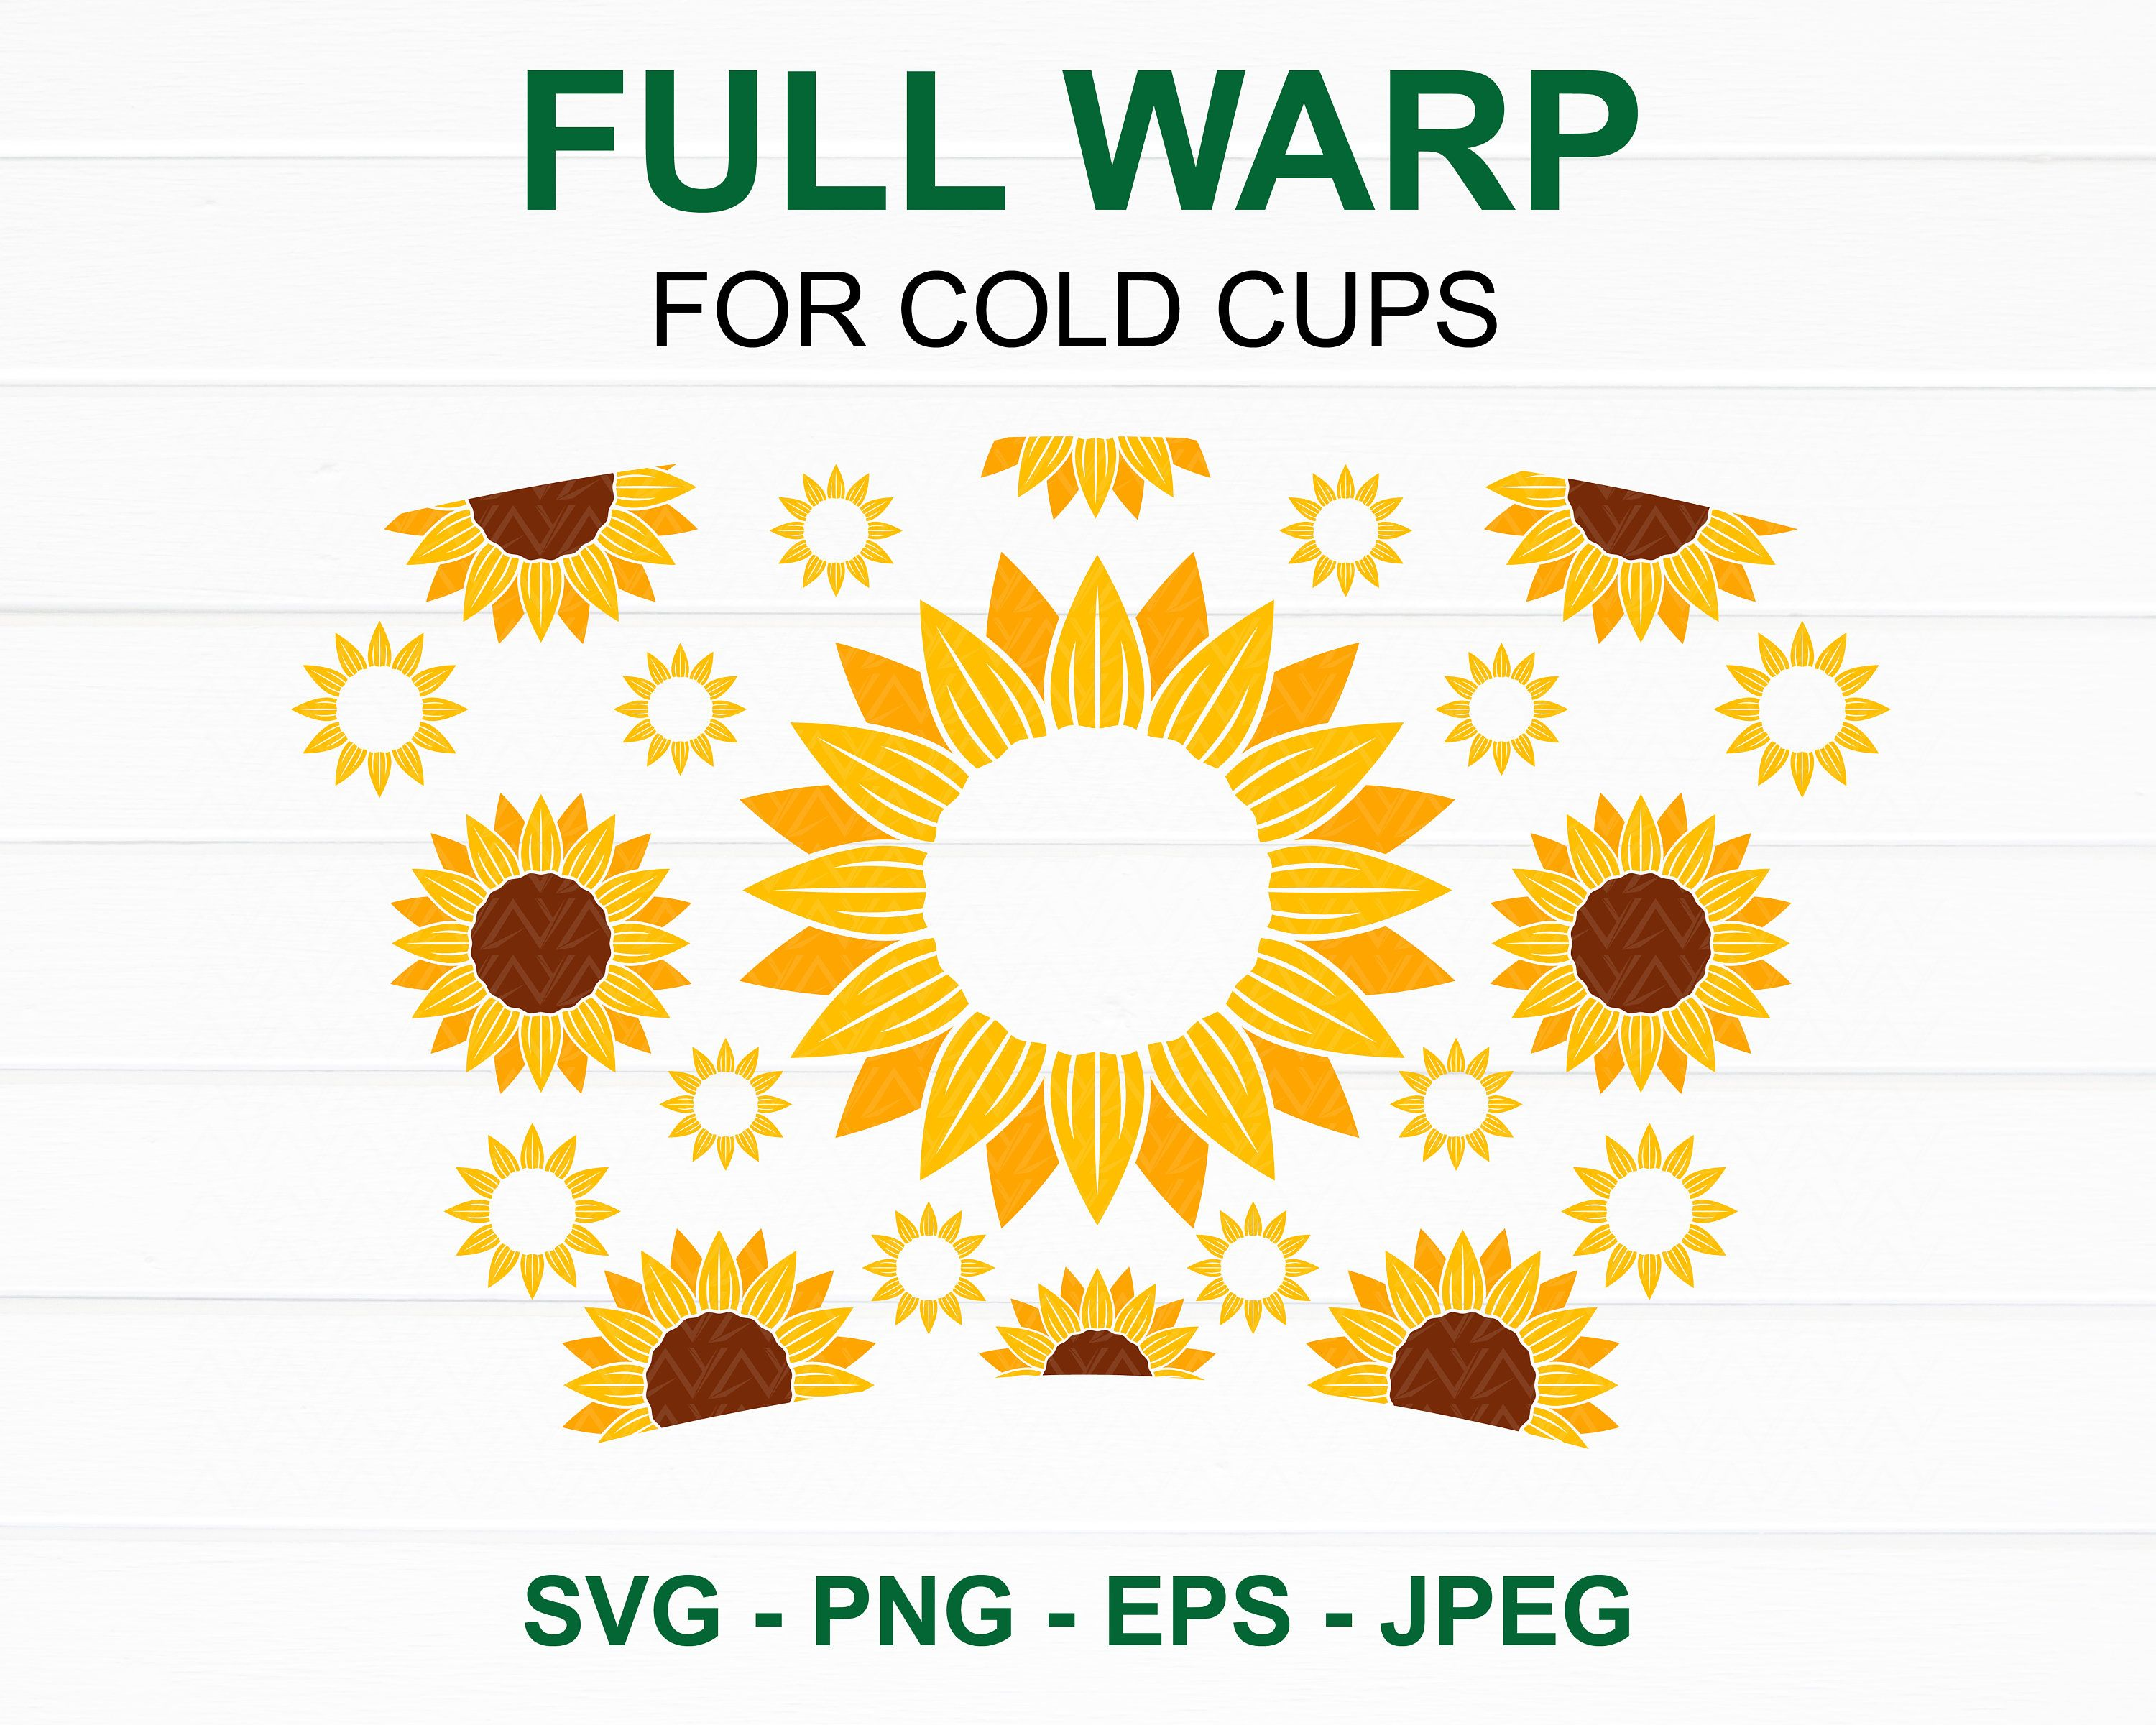 Sunflower Starbucks Cup Svg Sunflower Full Wrap Starbucks Cup For 24oz Venti Cold Cup Diy Instant Download For Cricut Starbucks Cups Cricut Projects Vinyl Diy Cricut